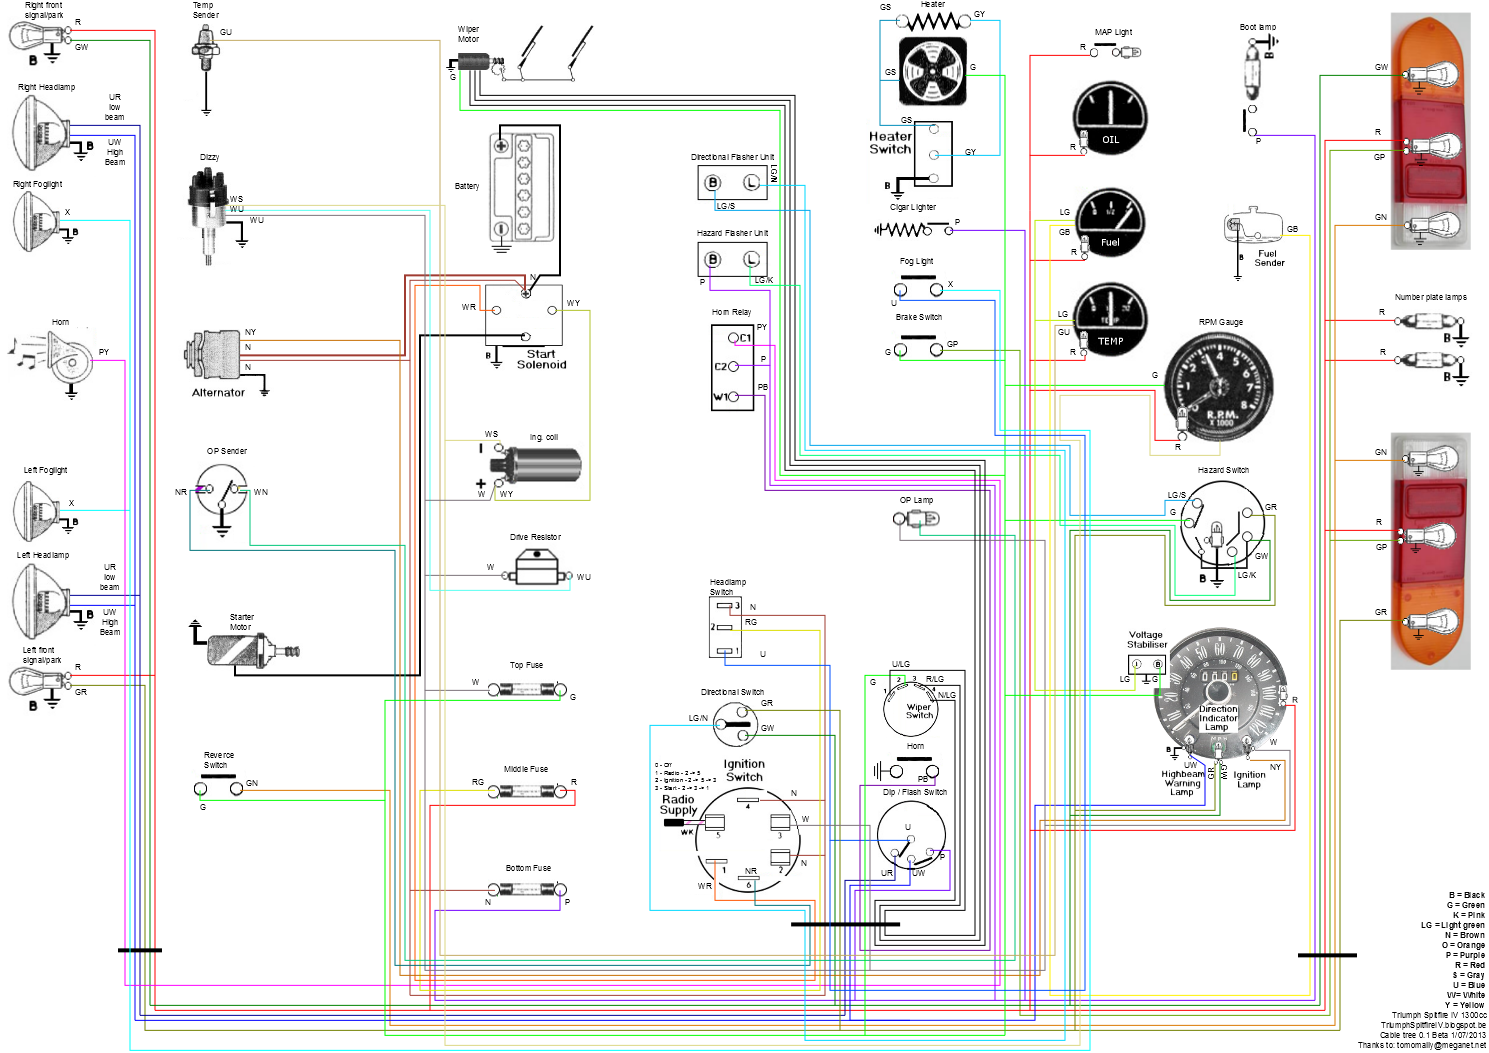 spitfire iv wiring diagram mk4 wiring diagram mk4 tdi wiring diagram \u2022 wiring diagrams j 2005 E55 AMG Performance Parts at love-stories.co